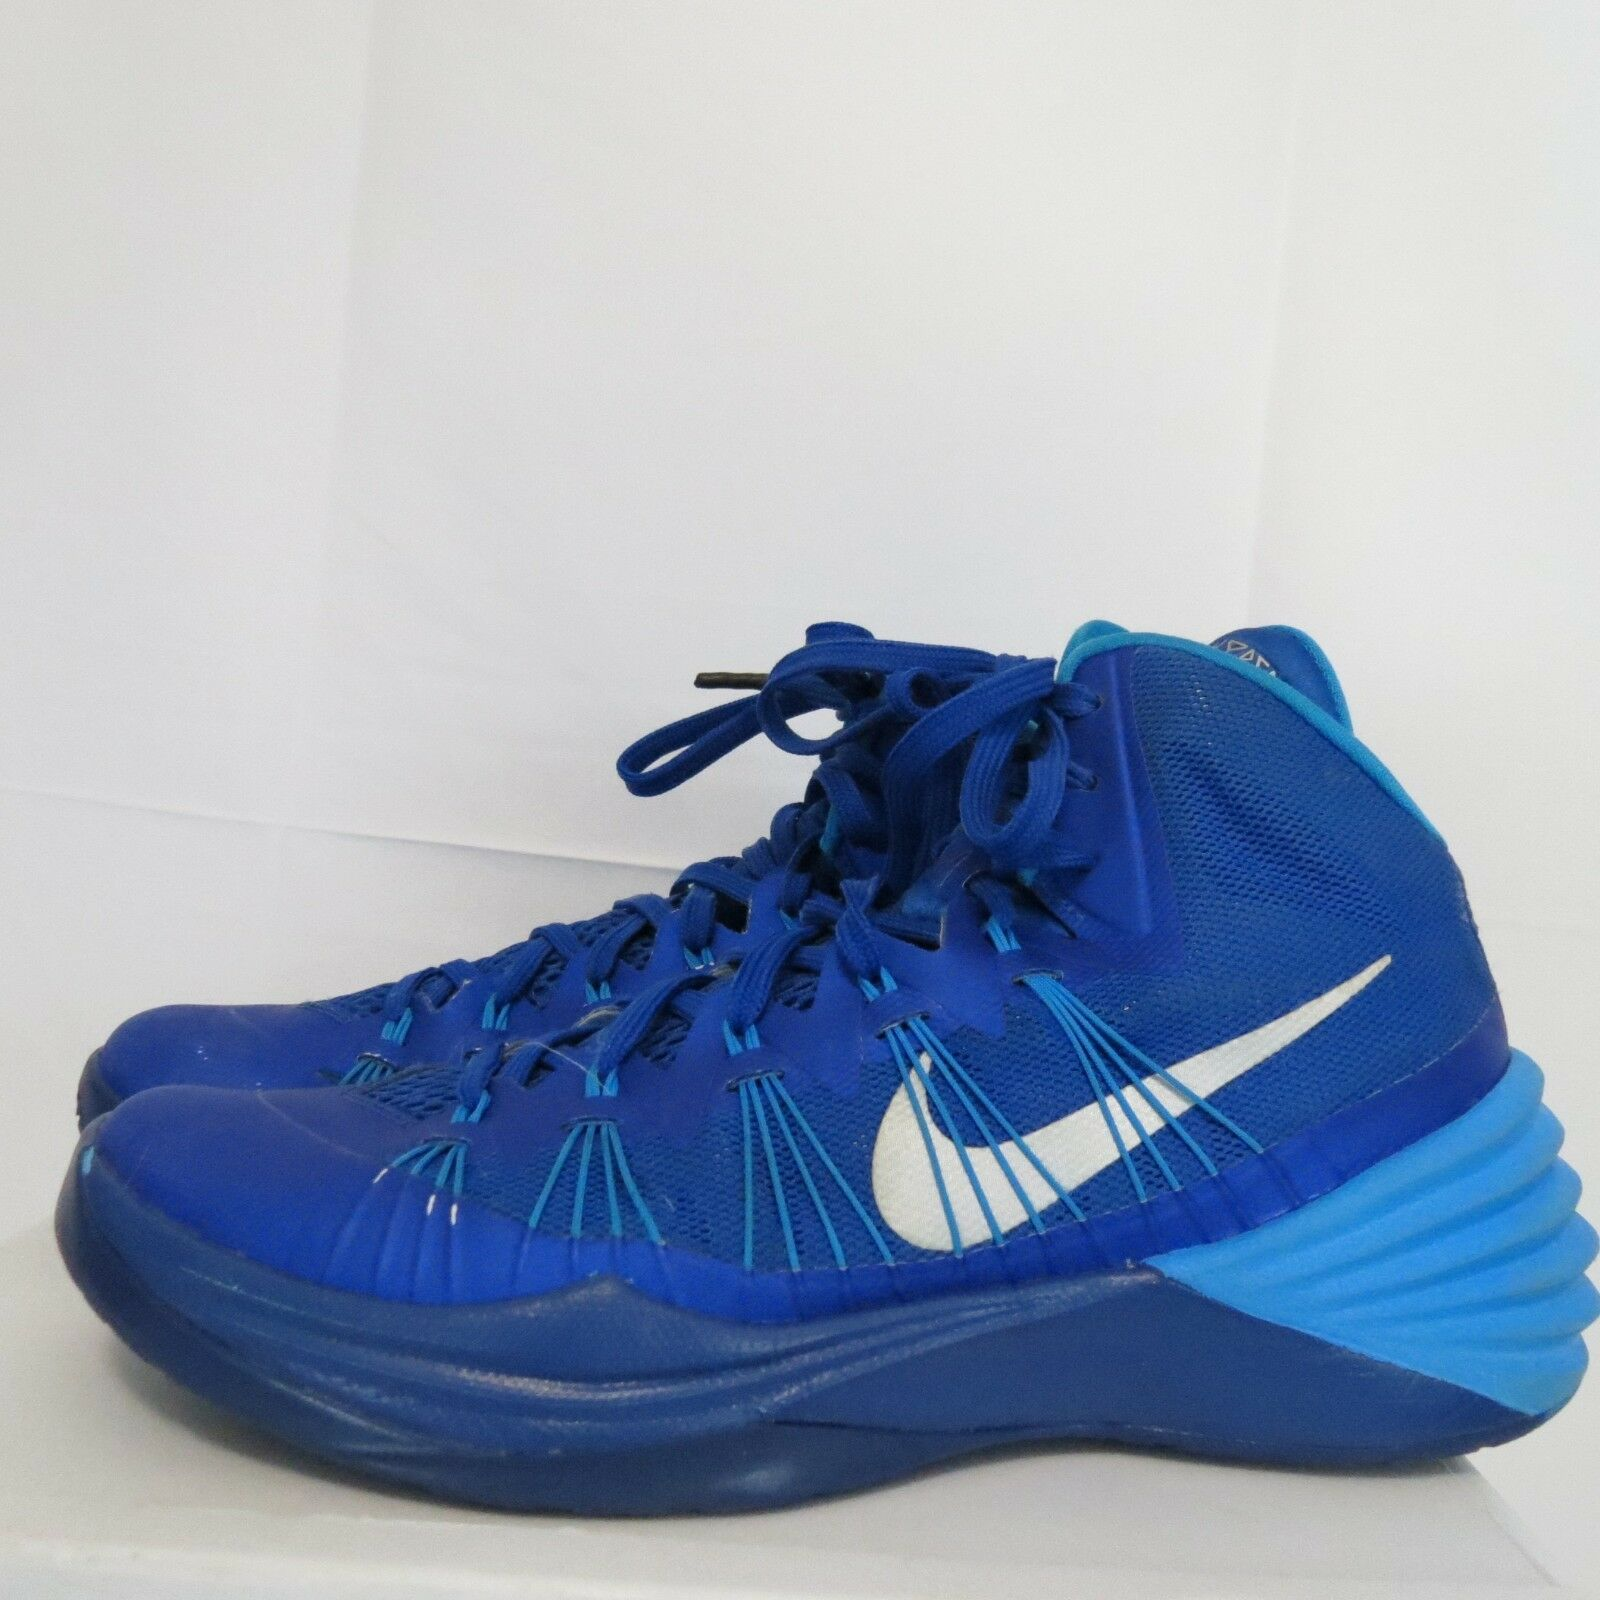 Nike HyperDunk Men's 11 EU 45 Basketball shoes bluee 599527-401